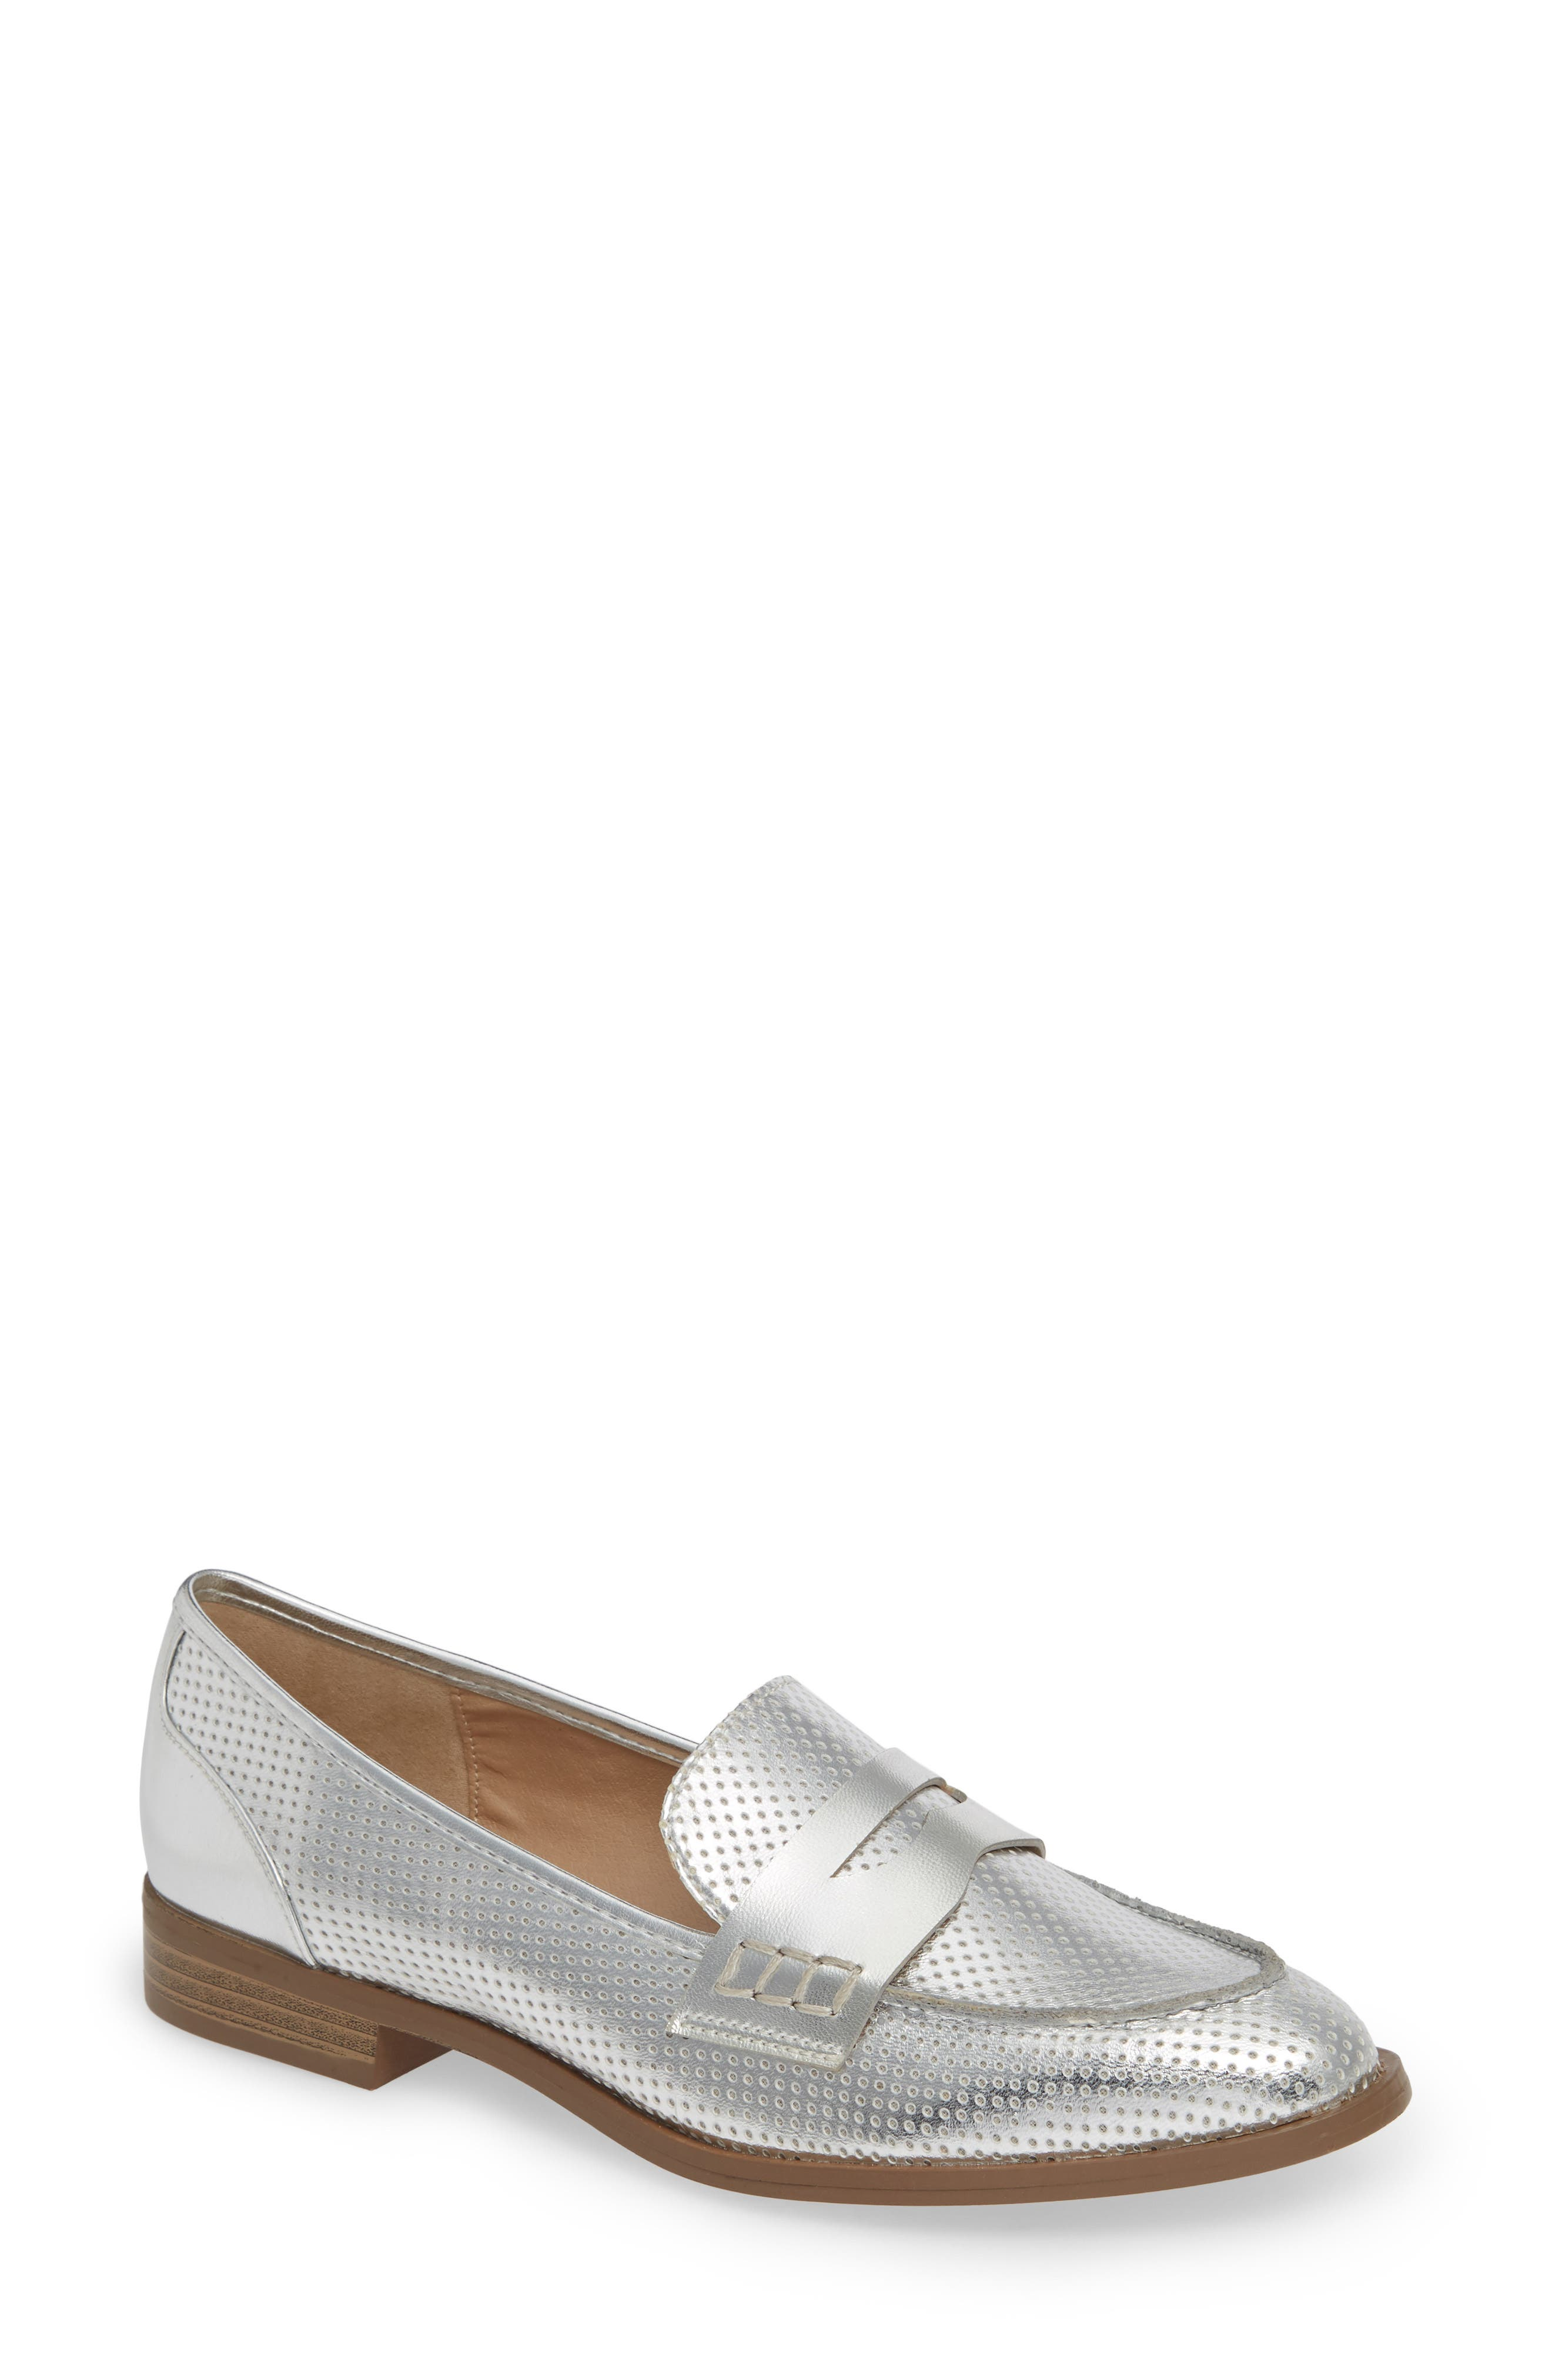 Lewis Loafer,                         Main,                         color, SILVER